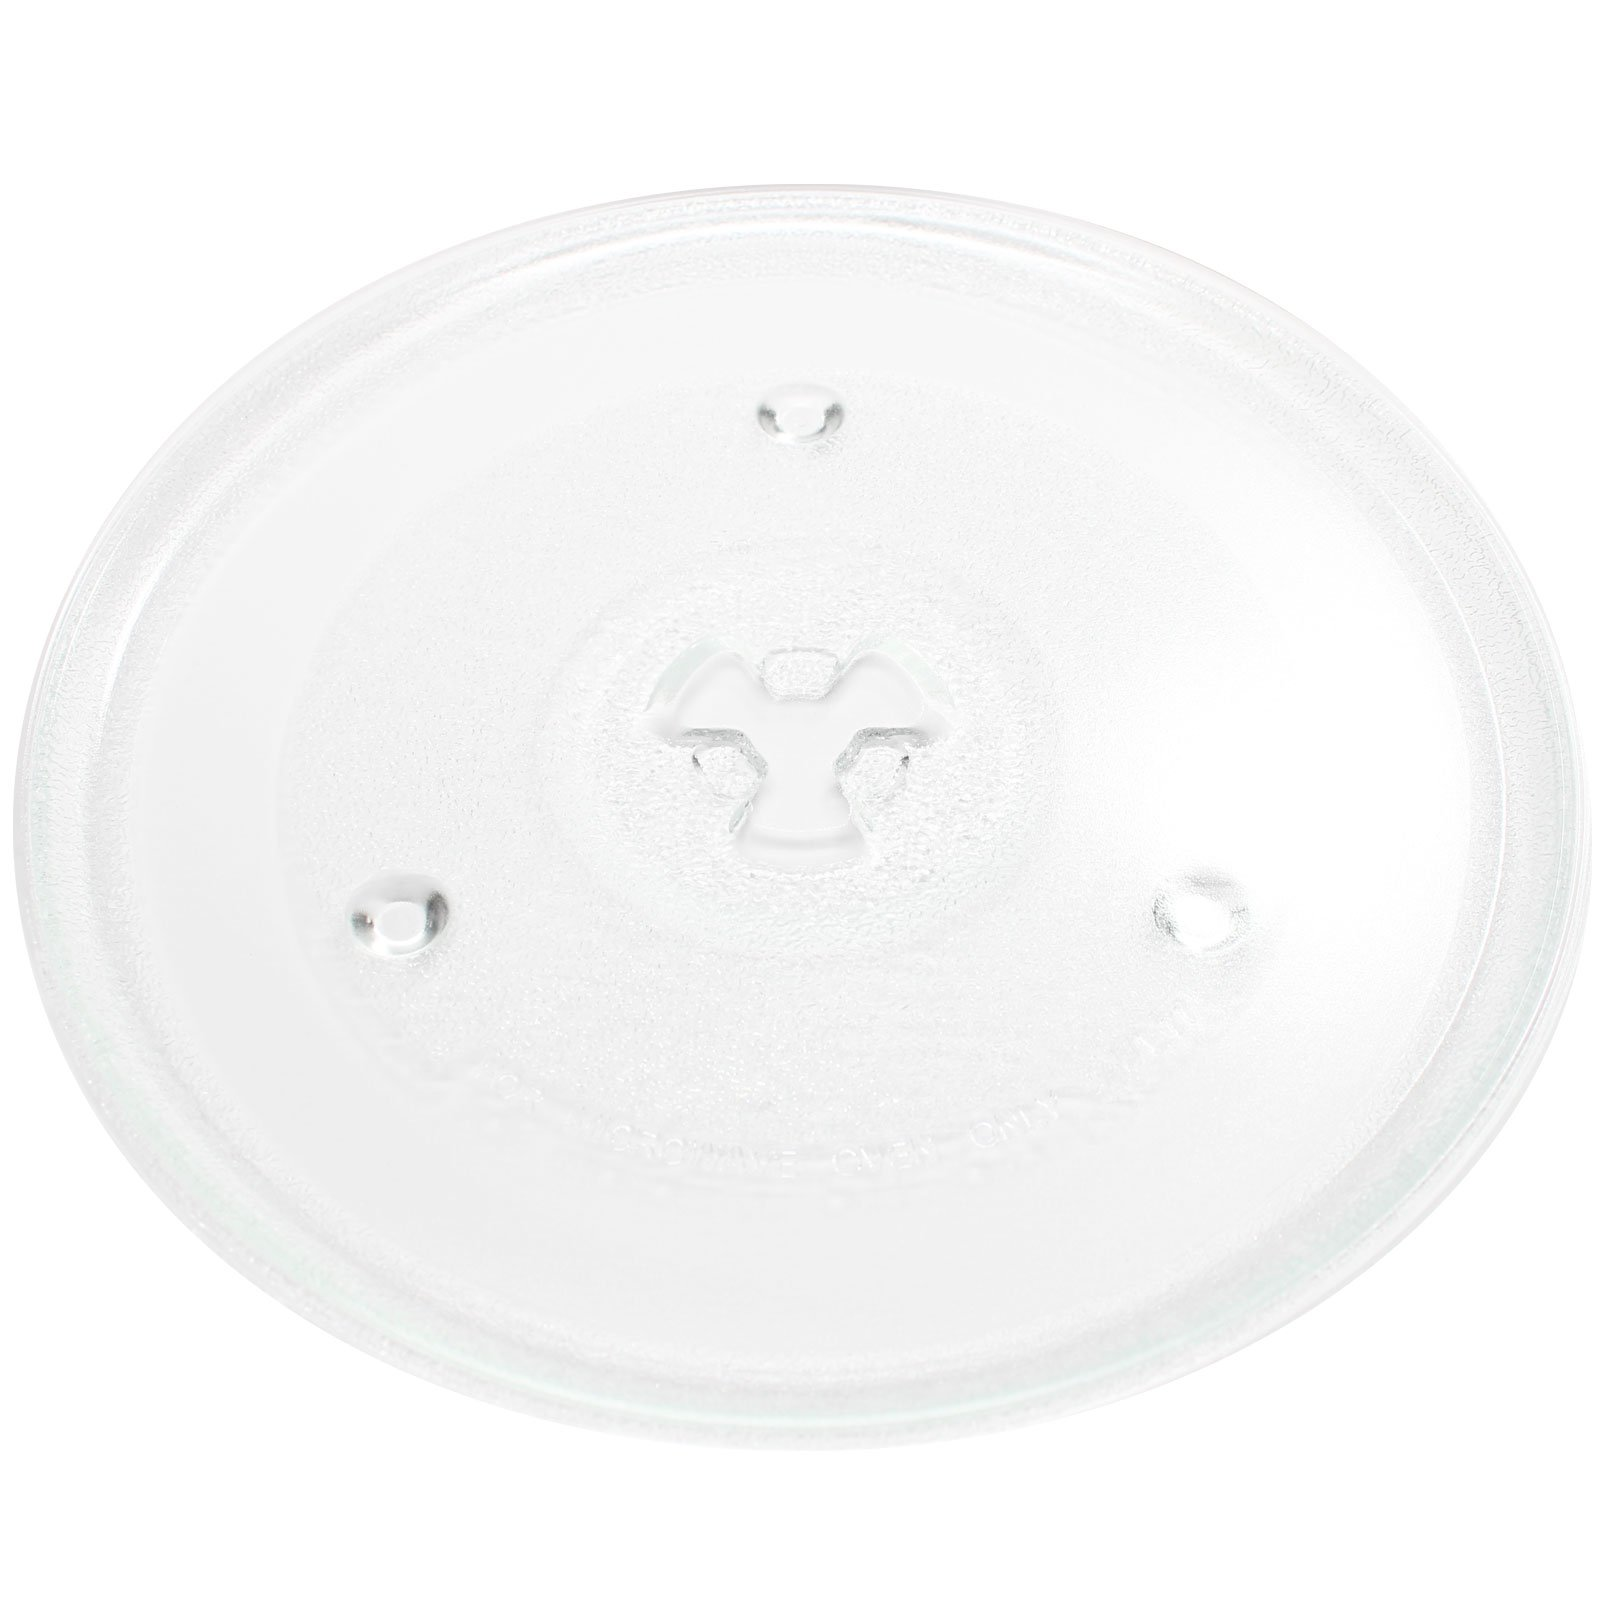 Replacement Hamilton Beach HB-P90D23A Microwave Glass Plate - Compatible Hamilton Beach 252100500497 Microwave Glass Turntable Tray - 10 1/2'' (270mm) by UpStart Battery (Image #1)